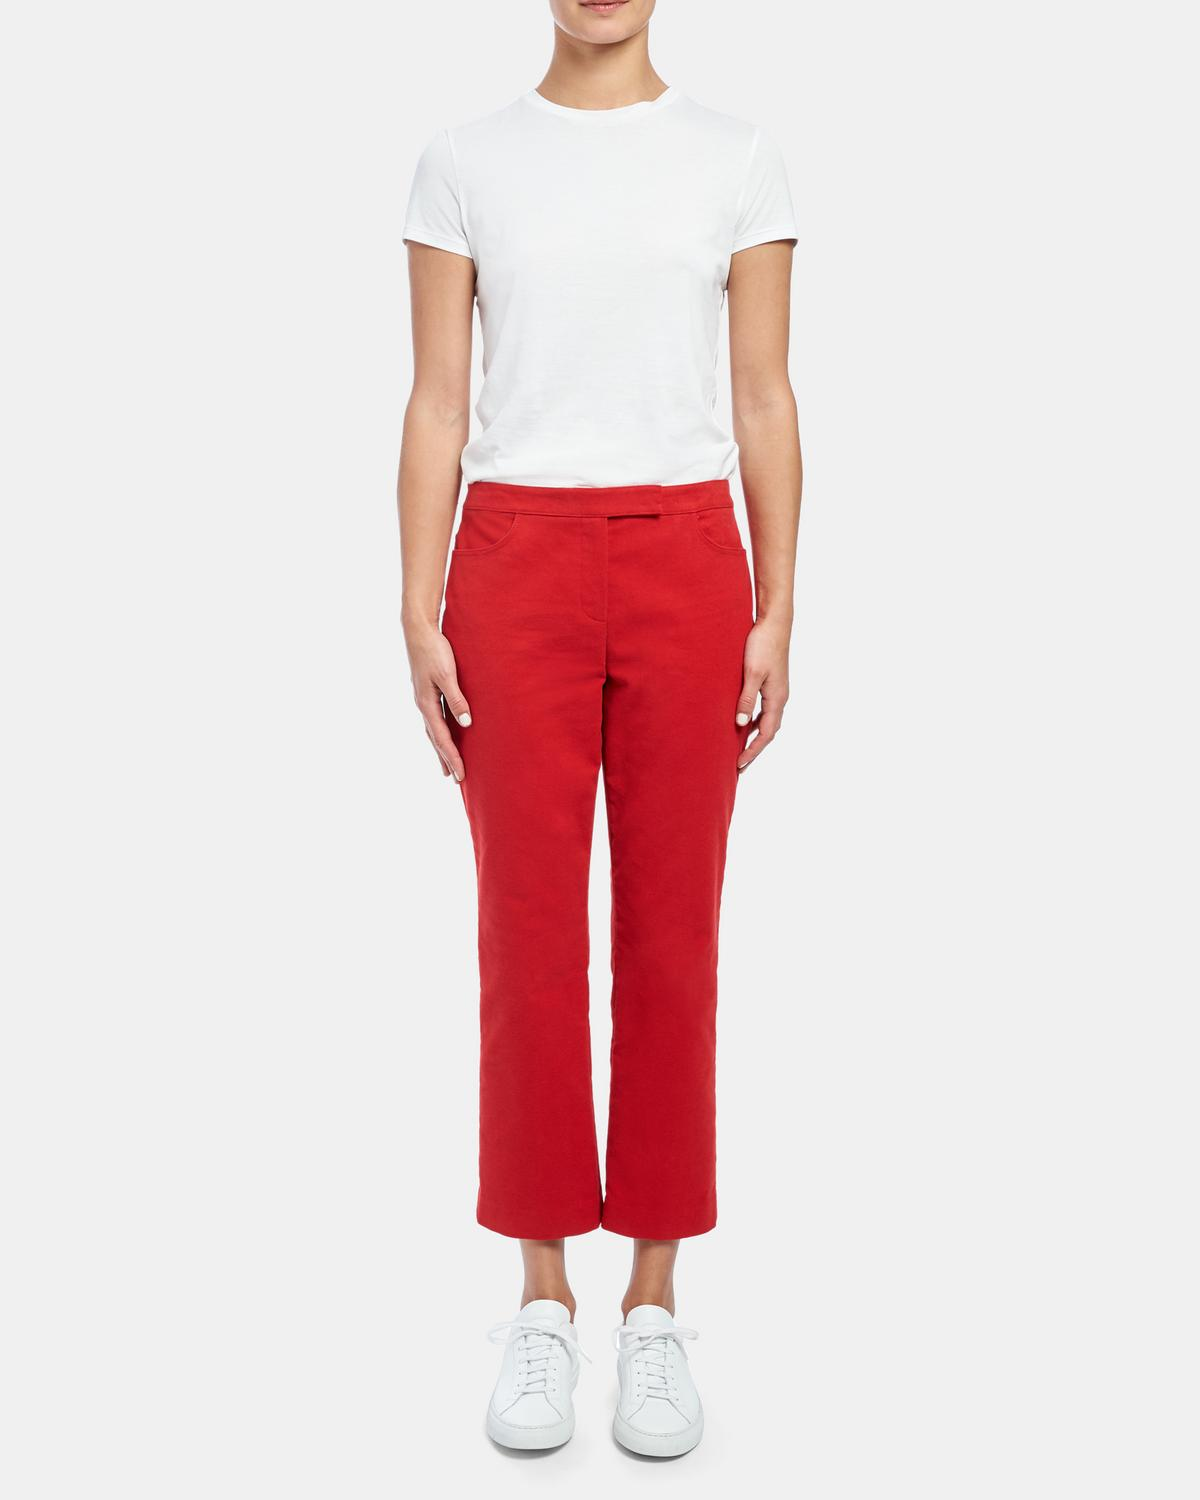 Cropped Pant in Moleskin Twill